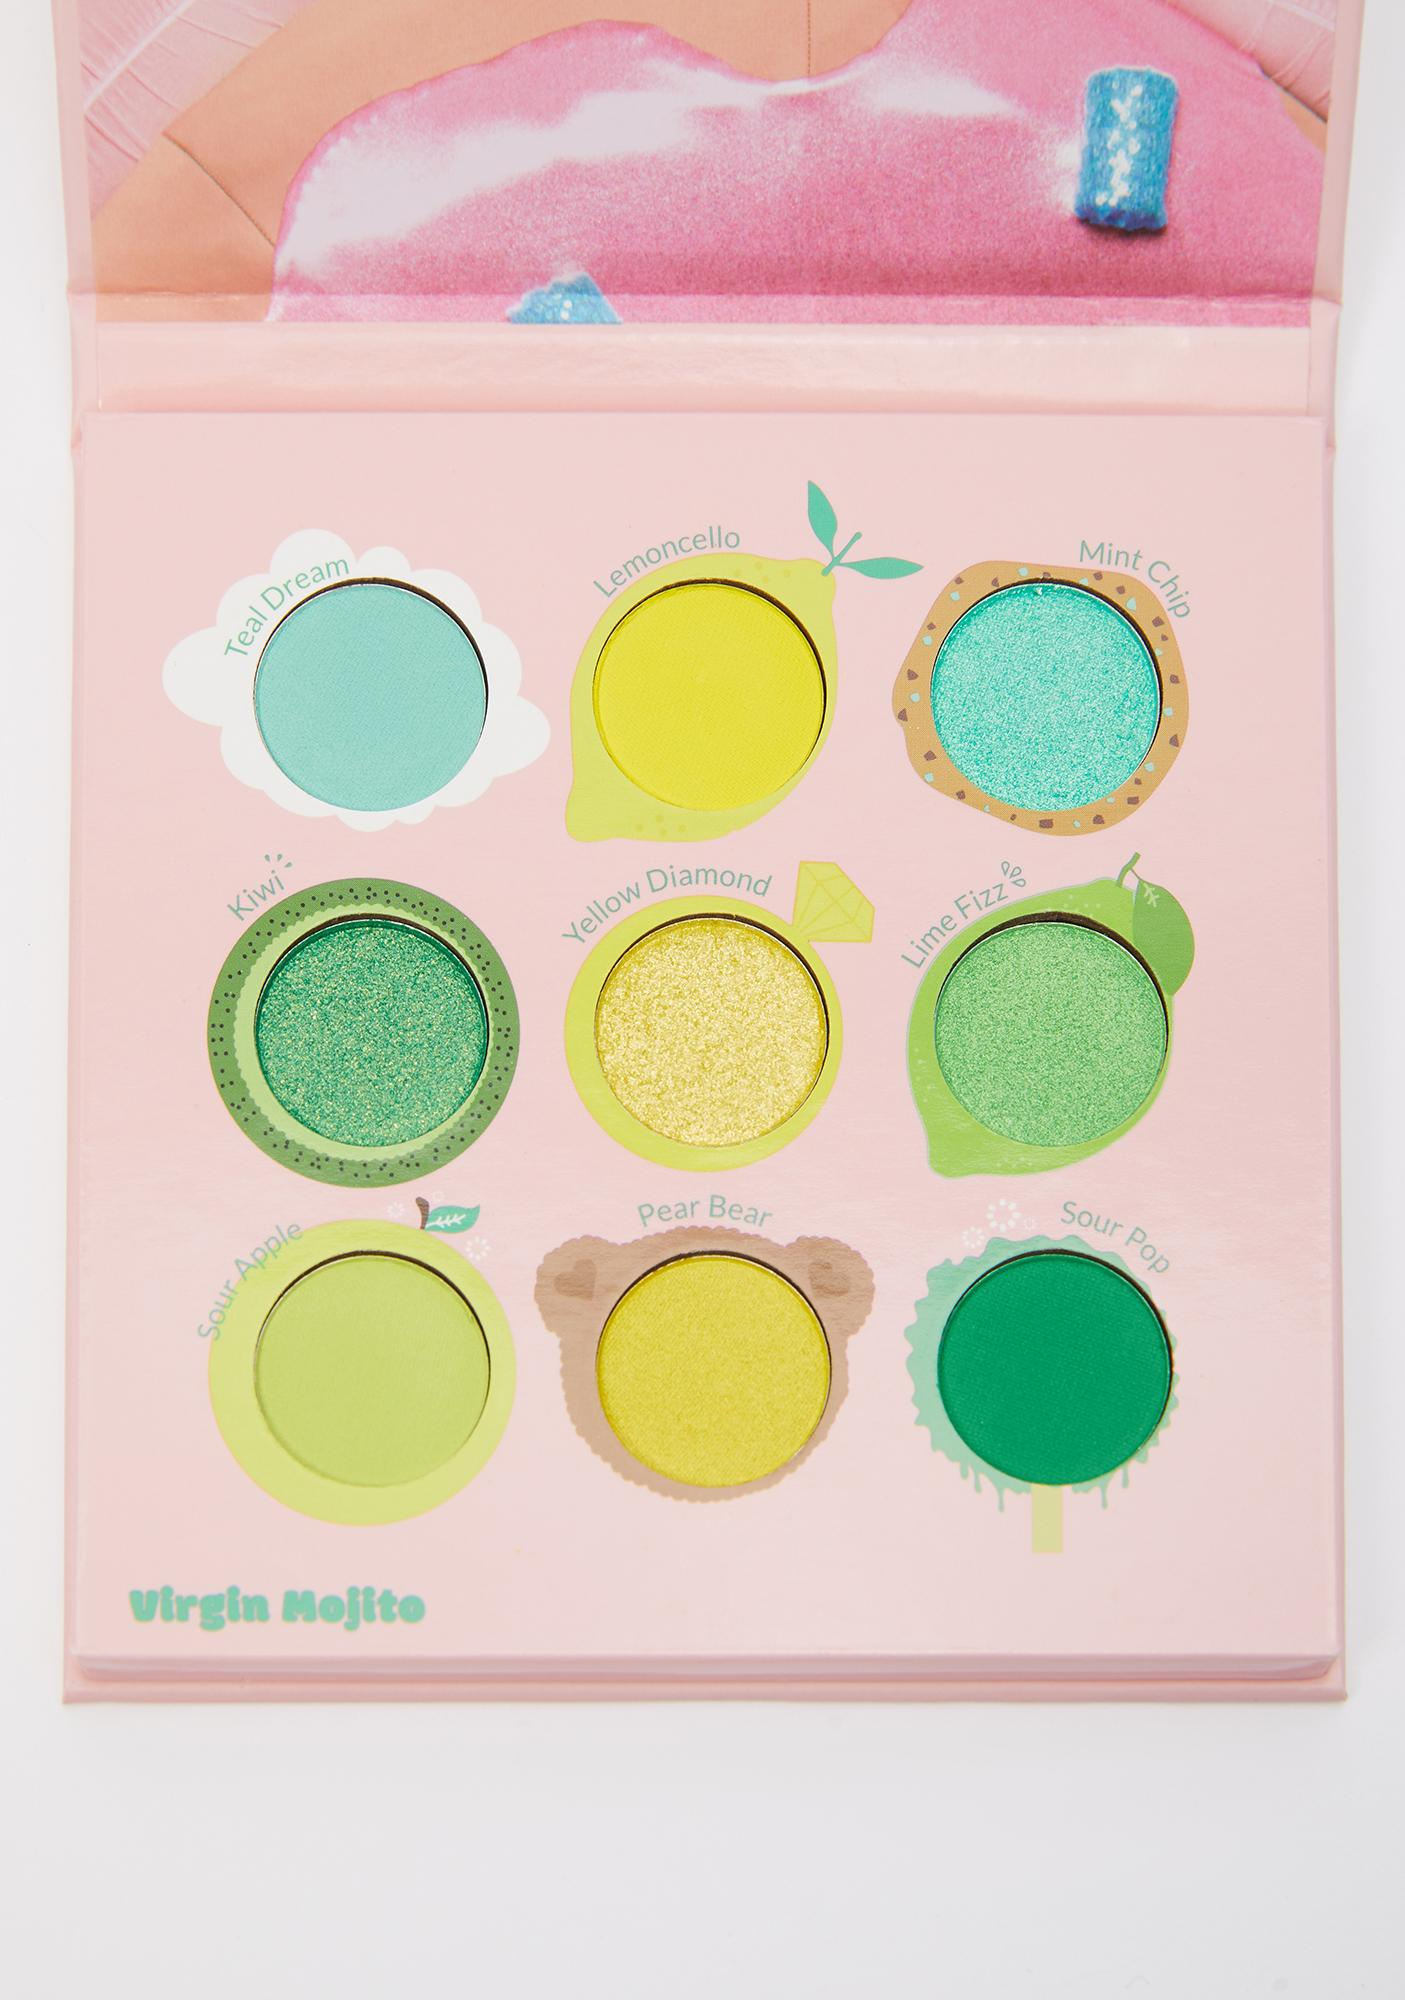 KimChi Chic Beauty Juicy Nine Virgin Mojito Eyeshadow Palette